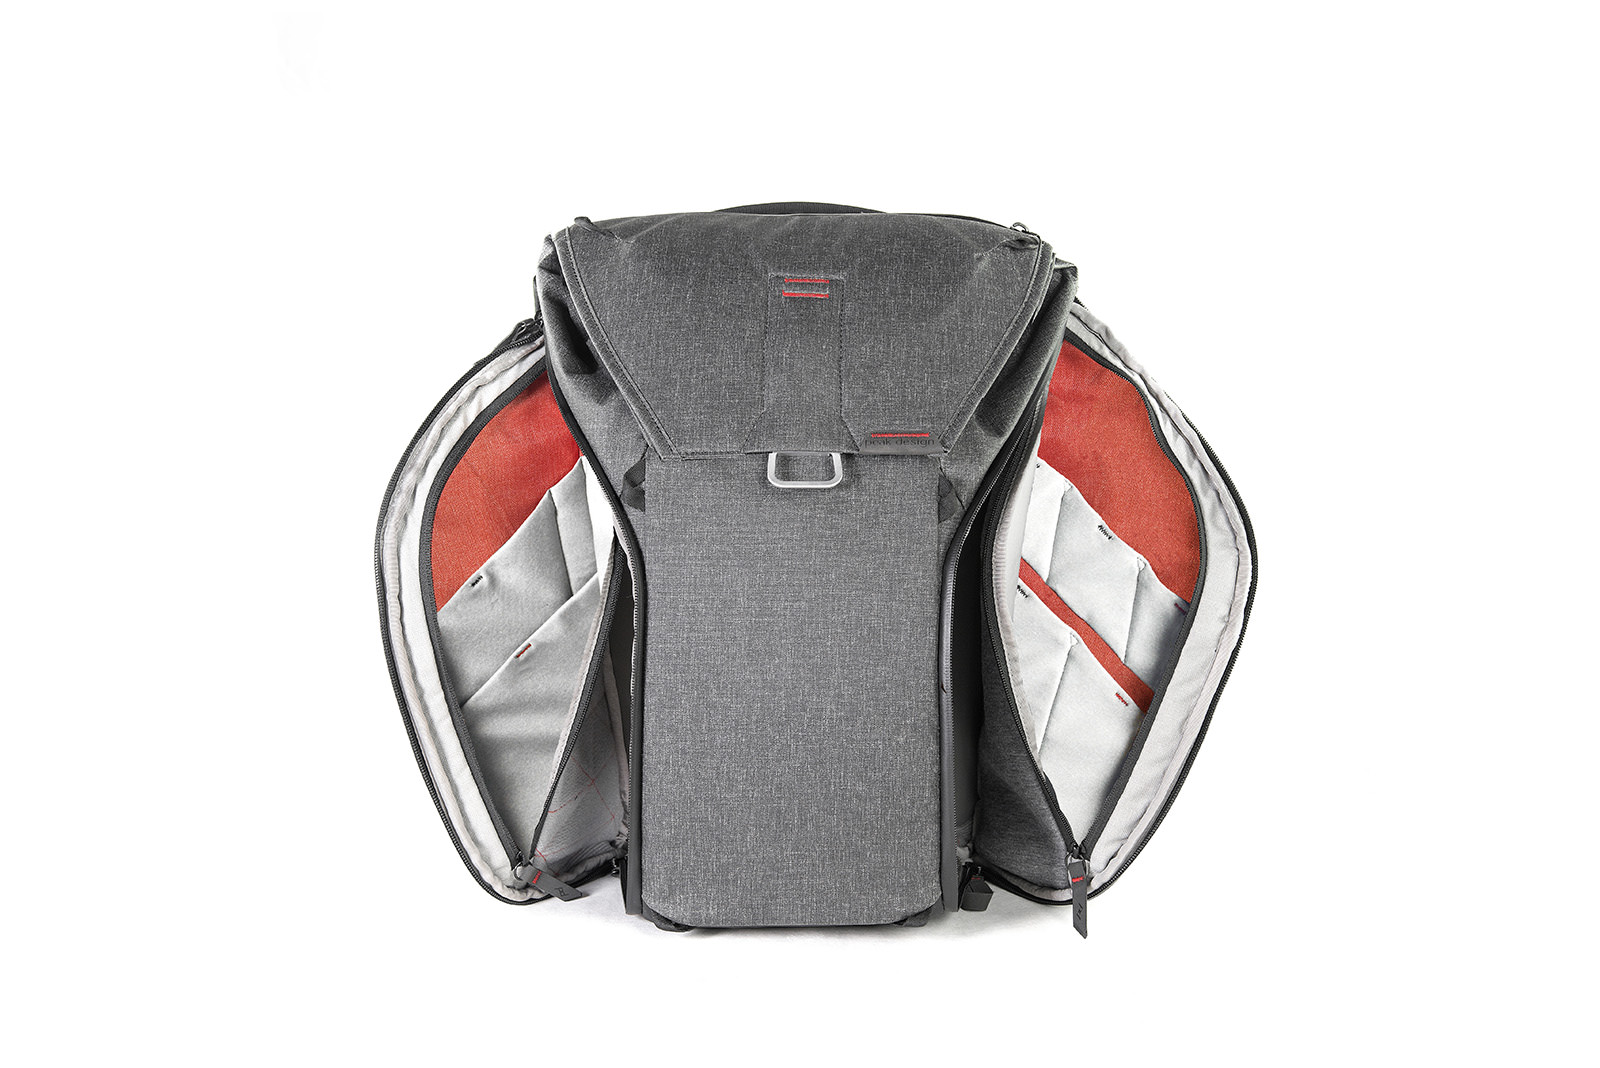 Peak Design Everyday Backpack Organization Pockets